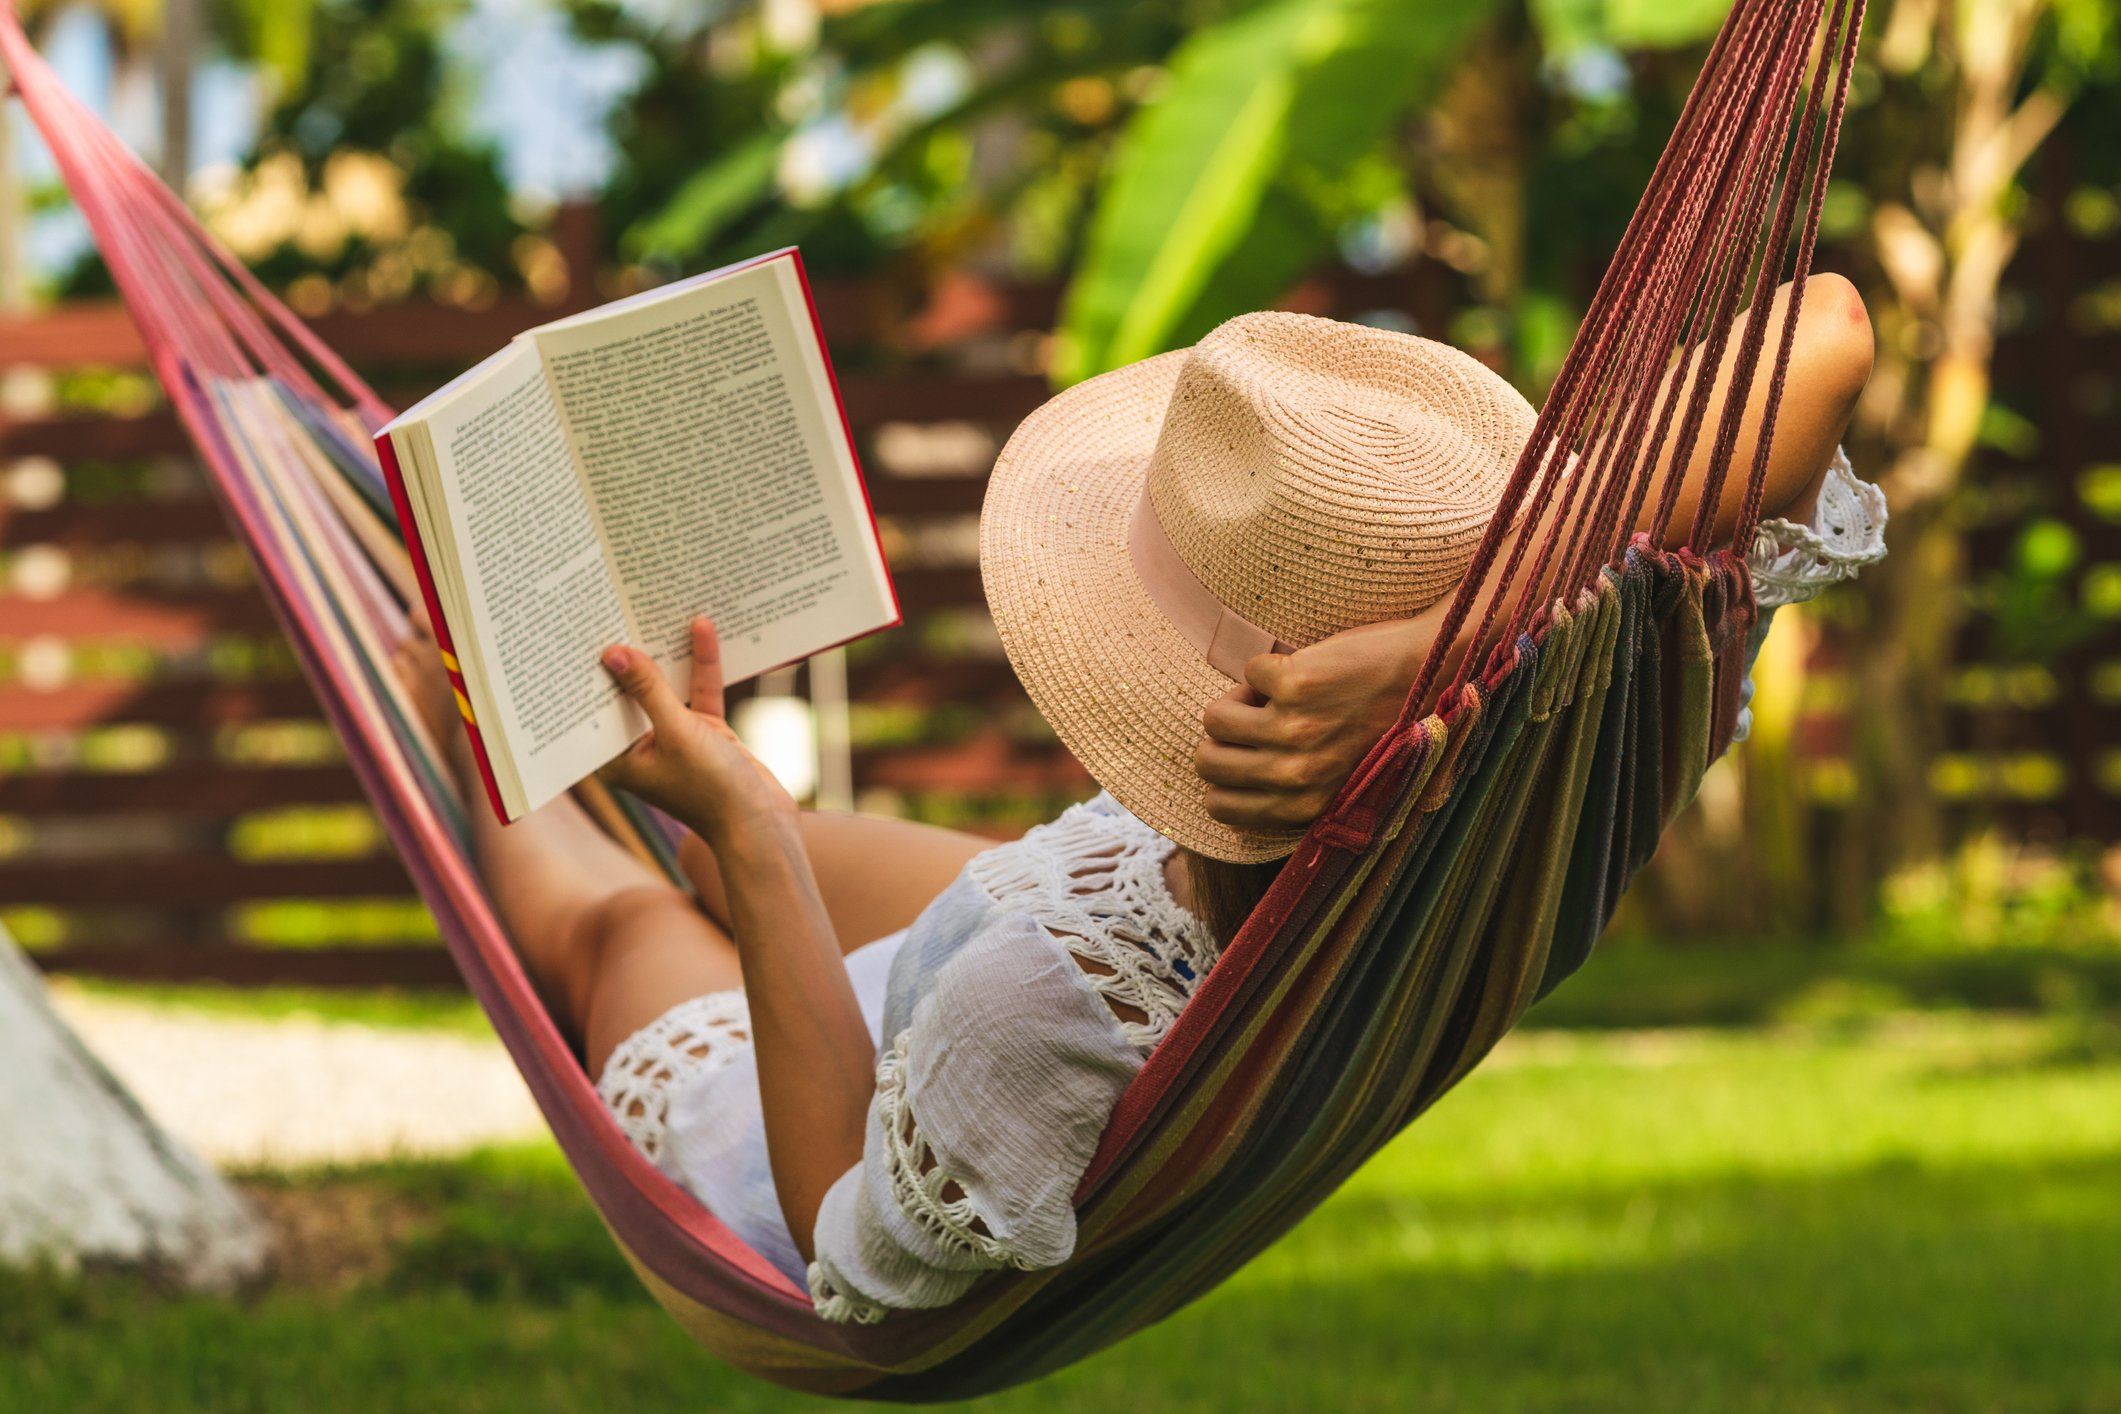 Retirement is Your Never-Ending Summer